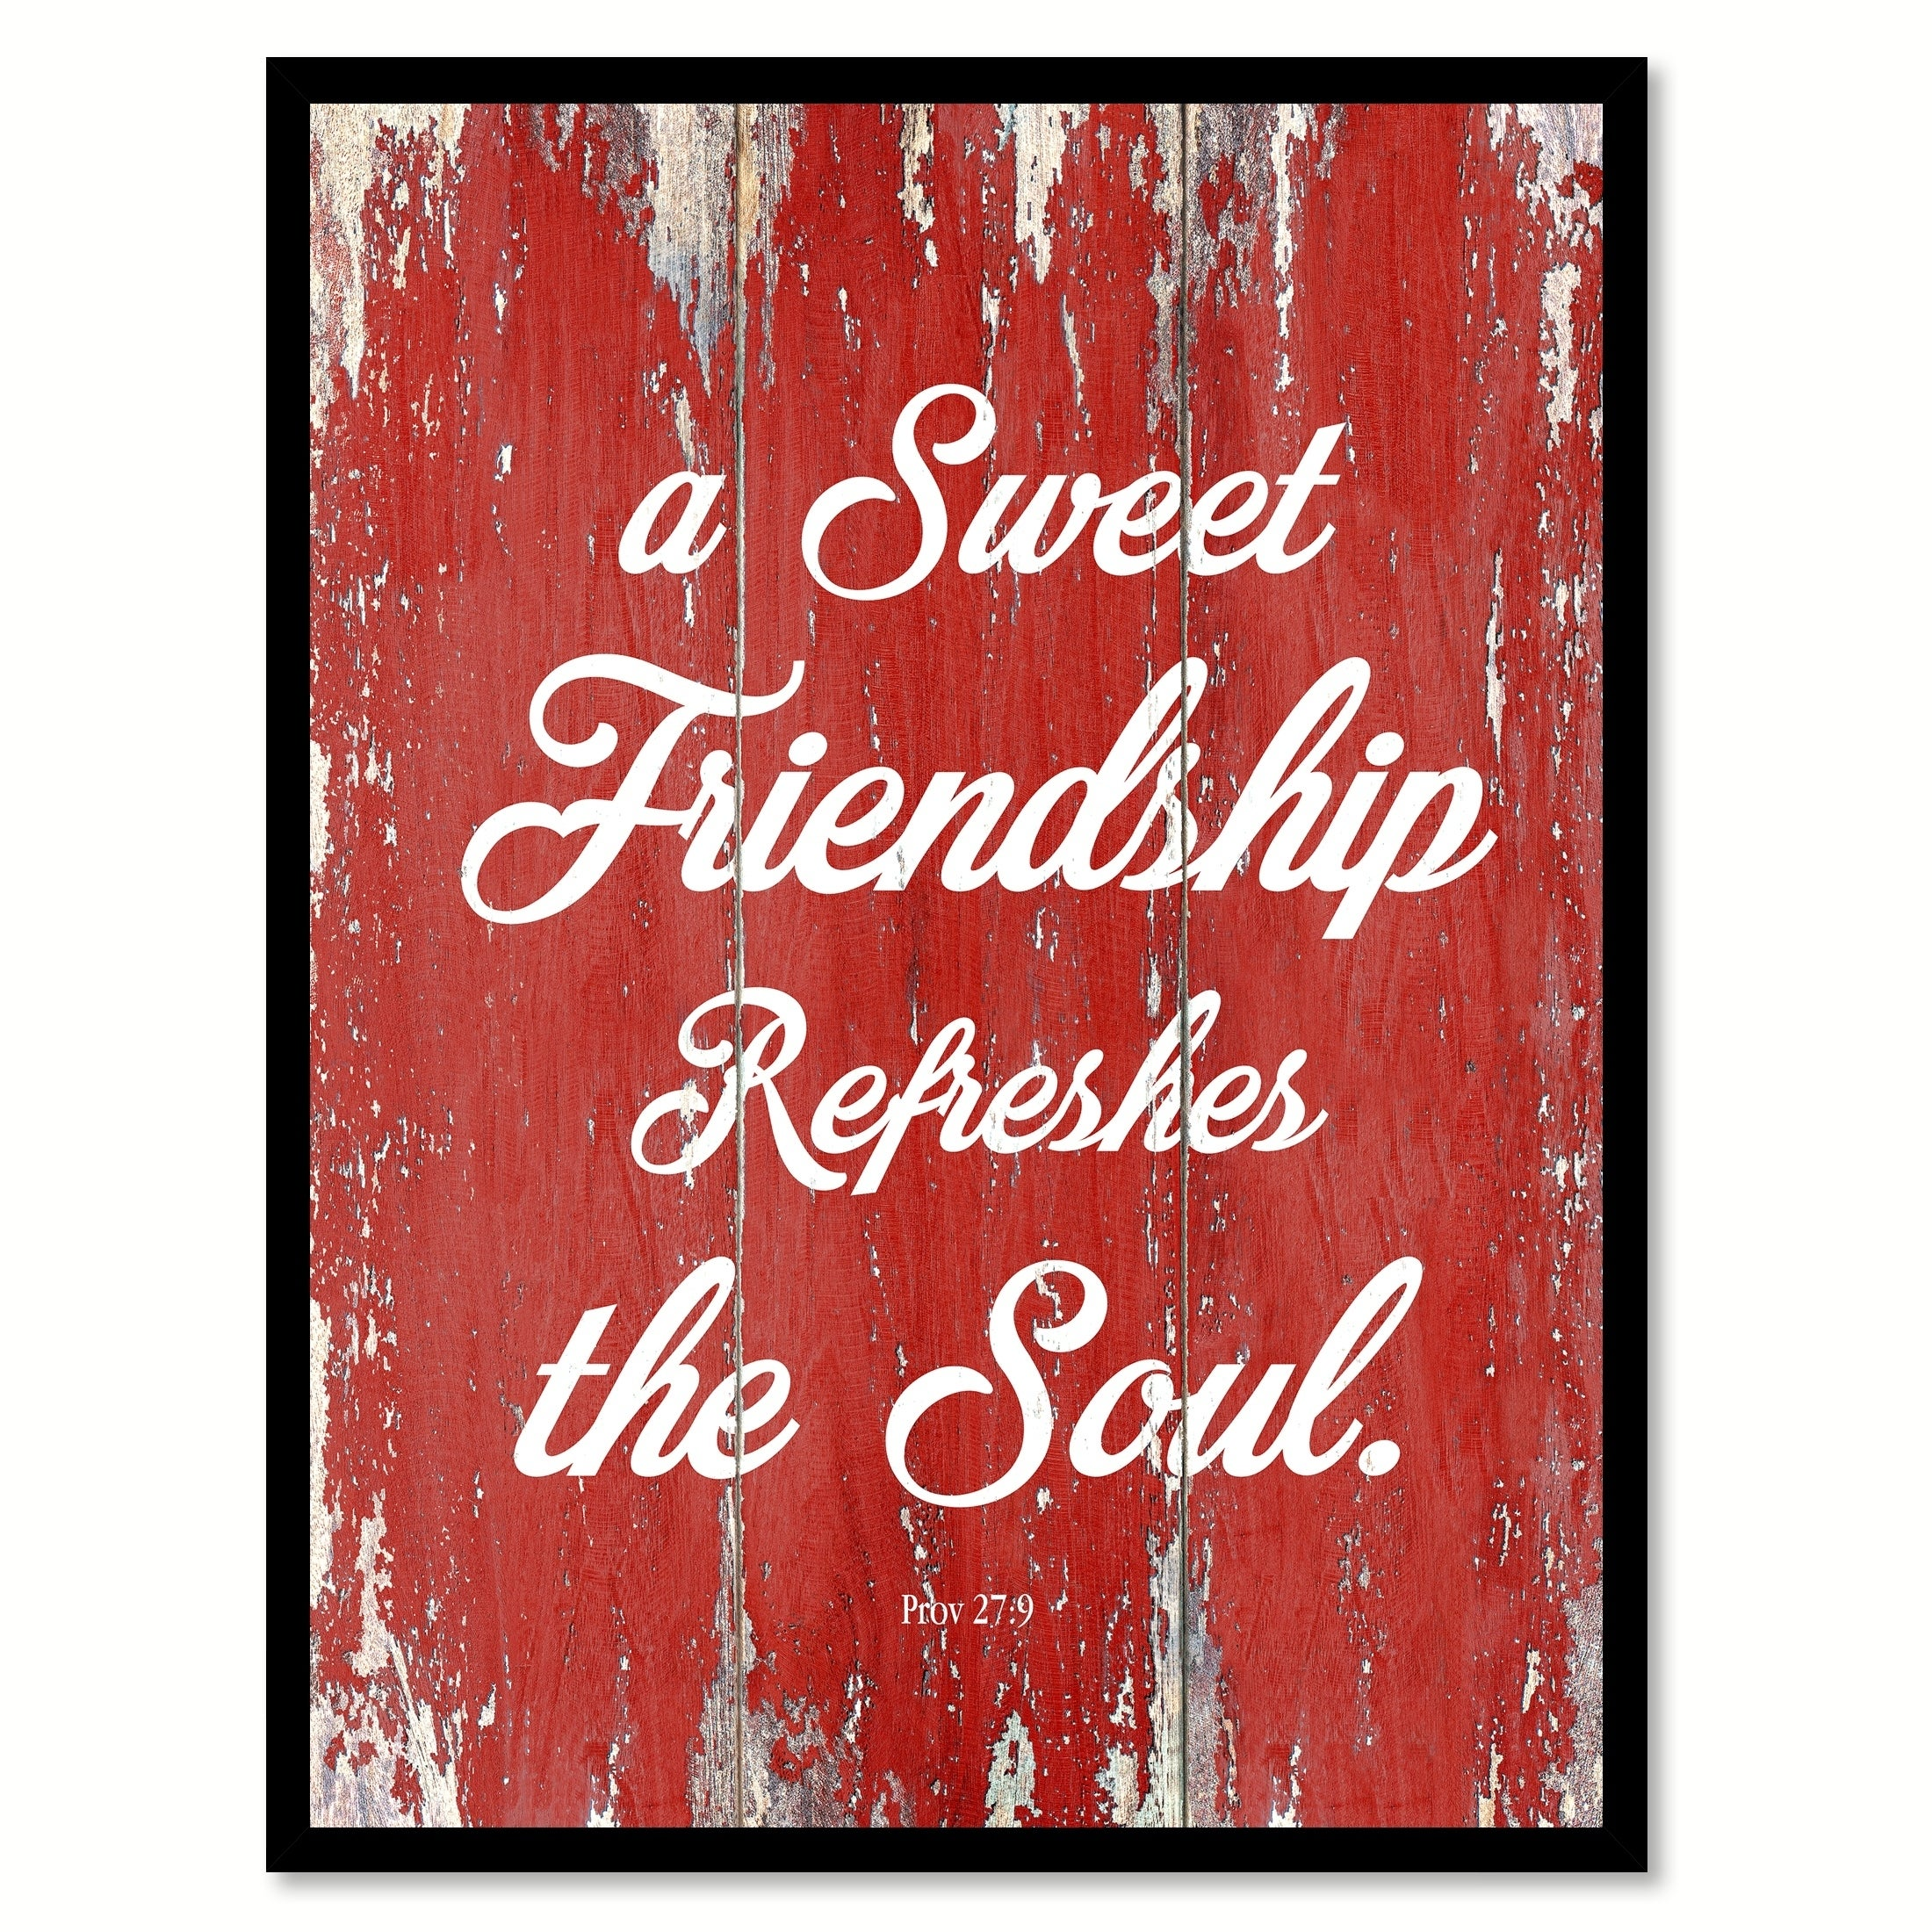 Shop A Sweet Friendship Refreshes The Soul Proverbs 27:9 Quote ...